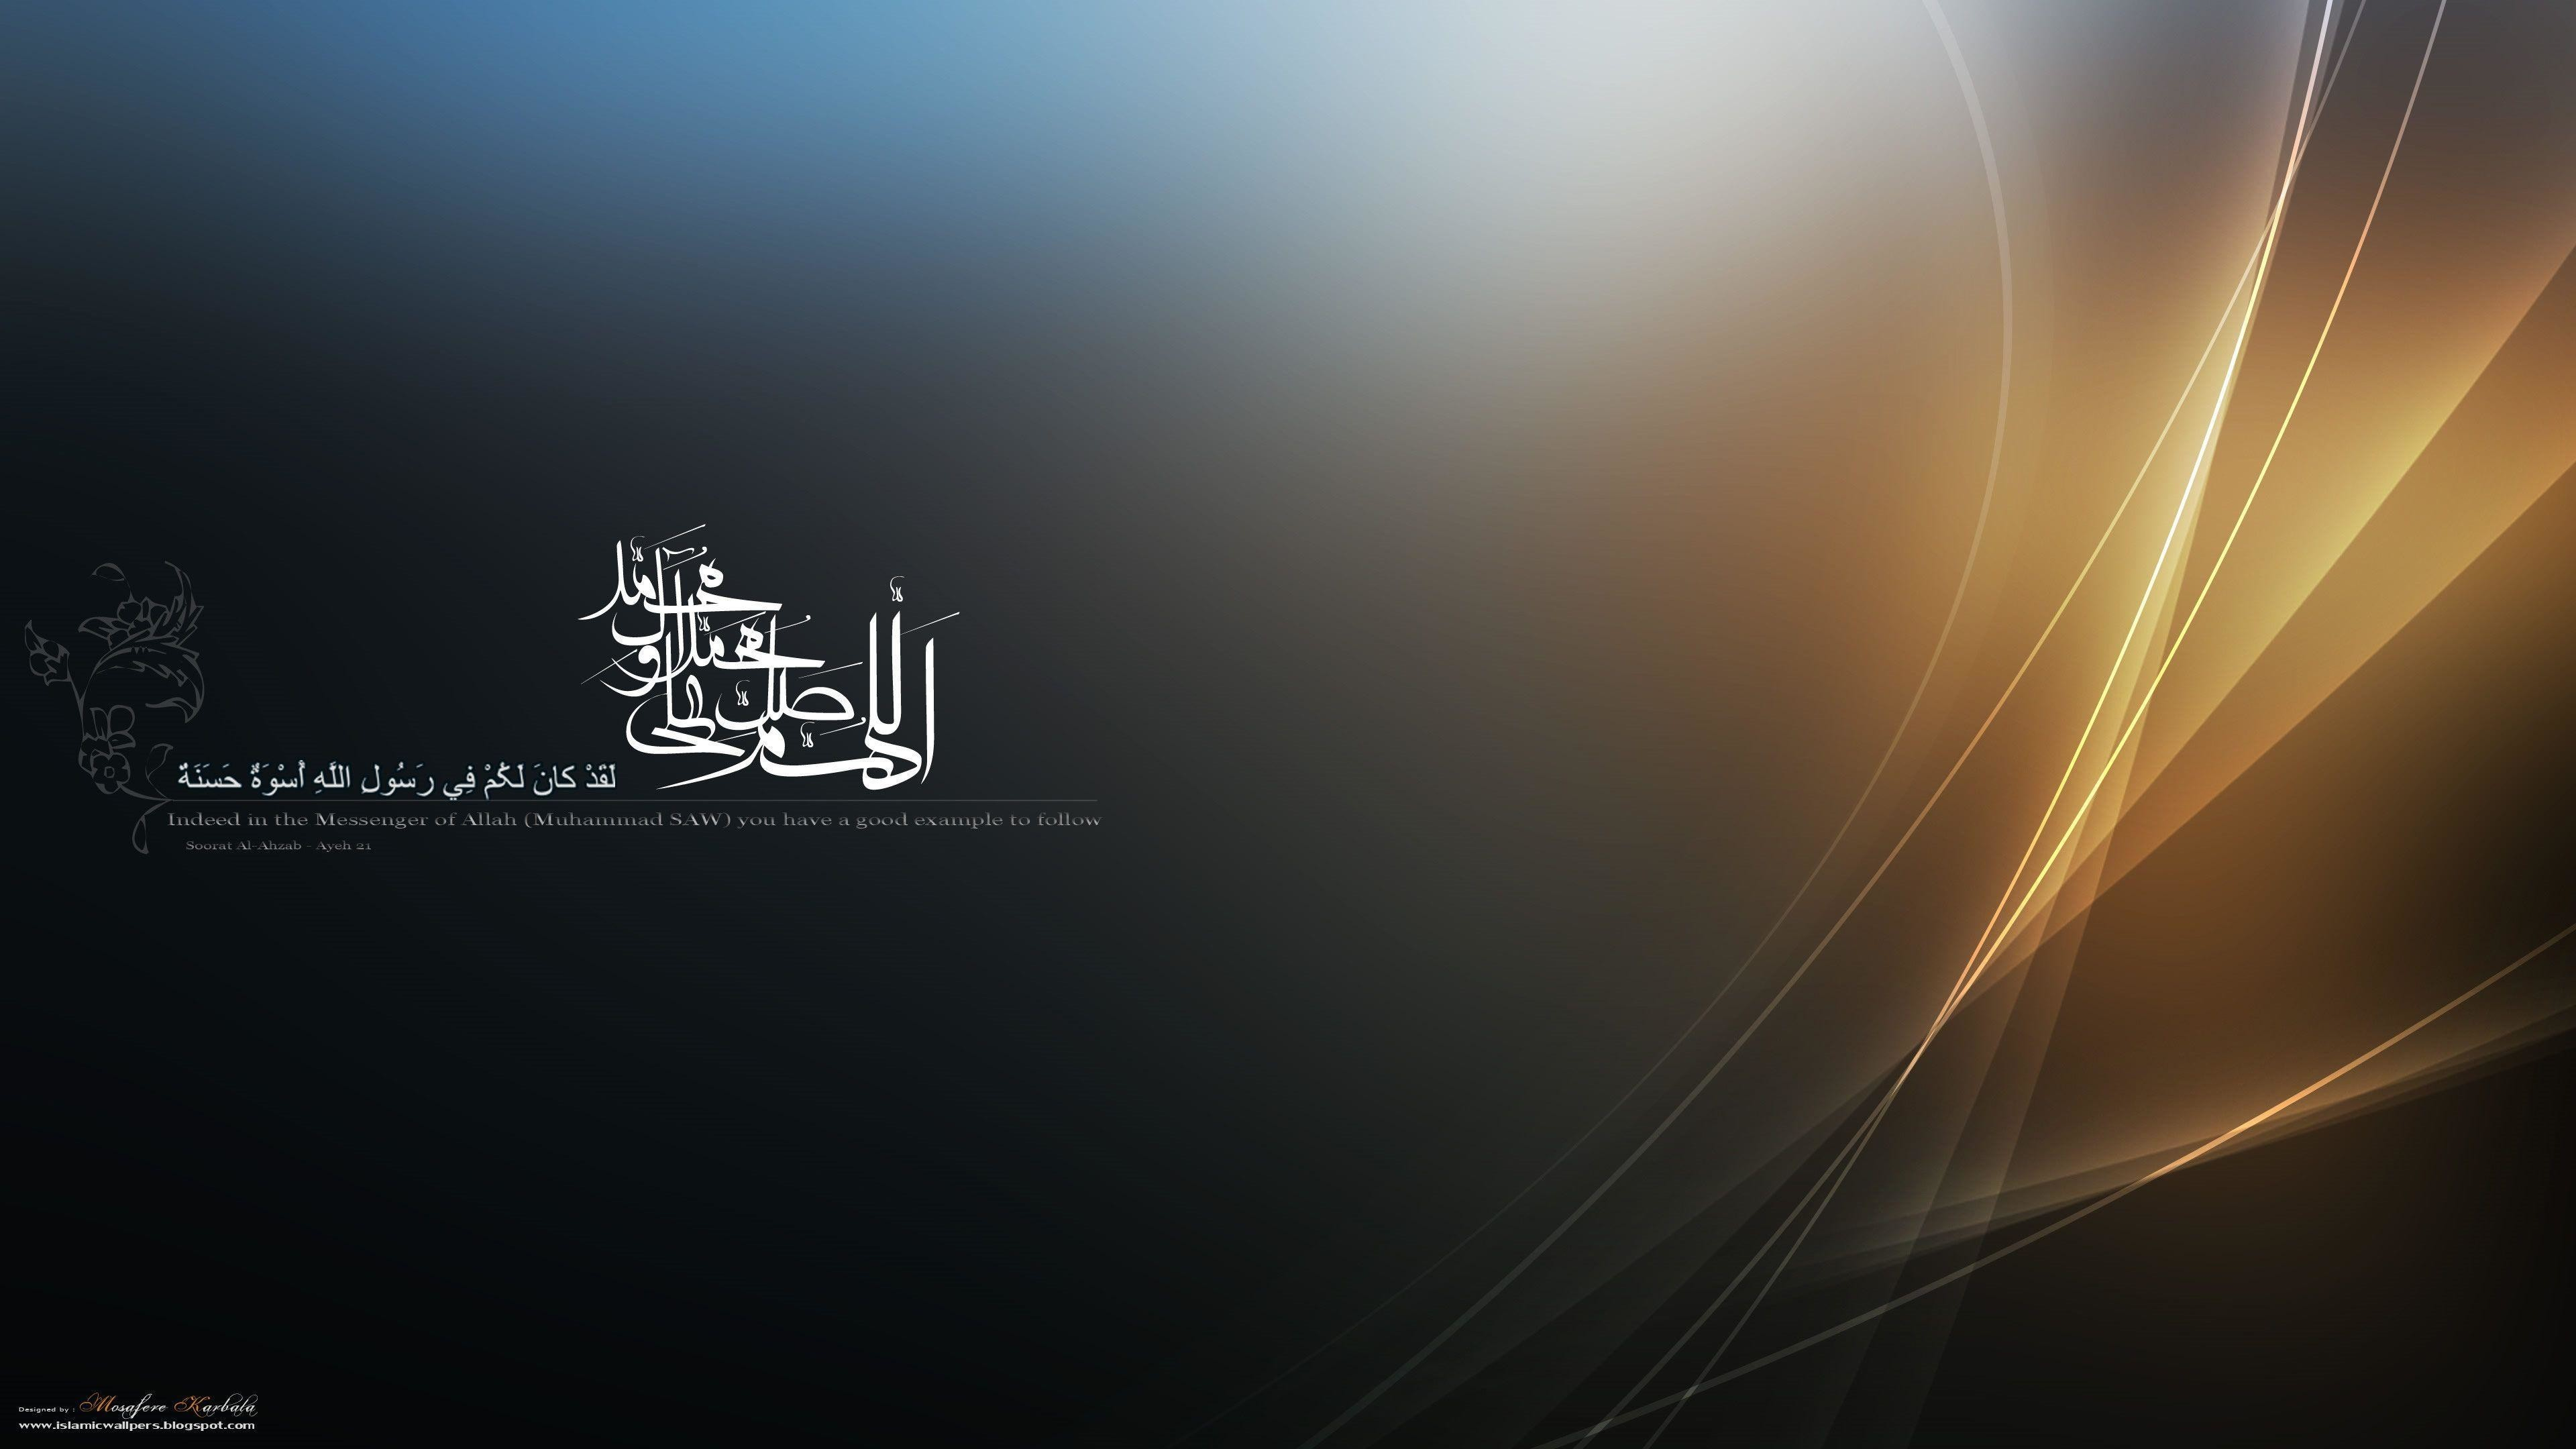 235c9daf77d 3840x2160 3840x2160 Islamic Background Wallpaper – HD Backgrounds Pic